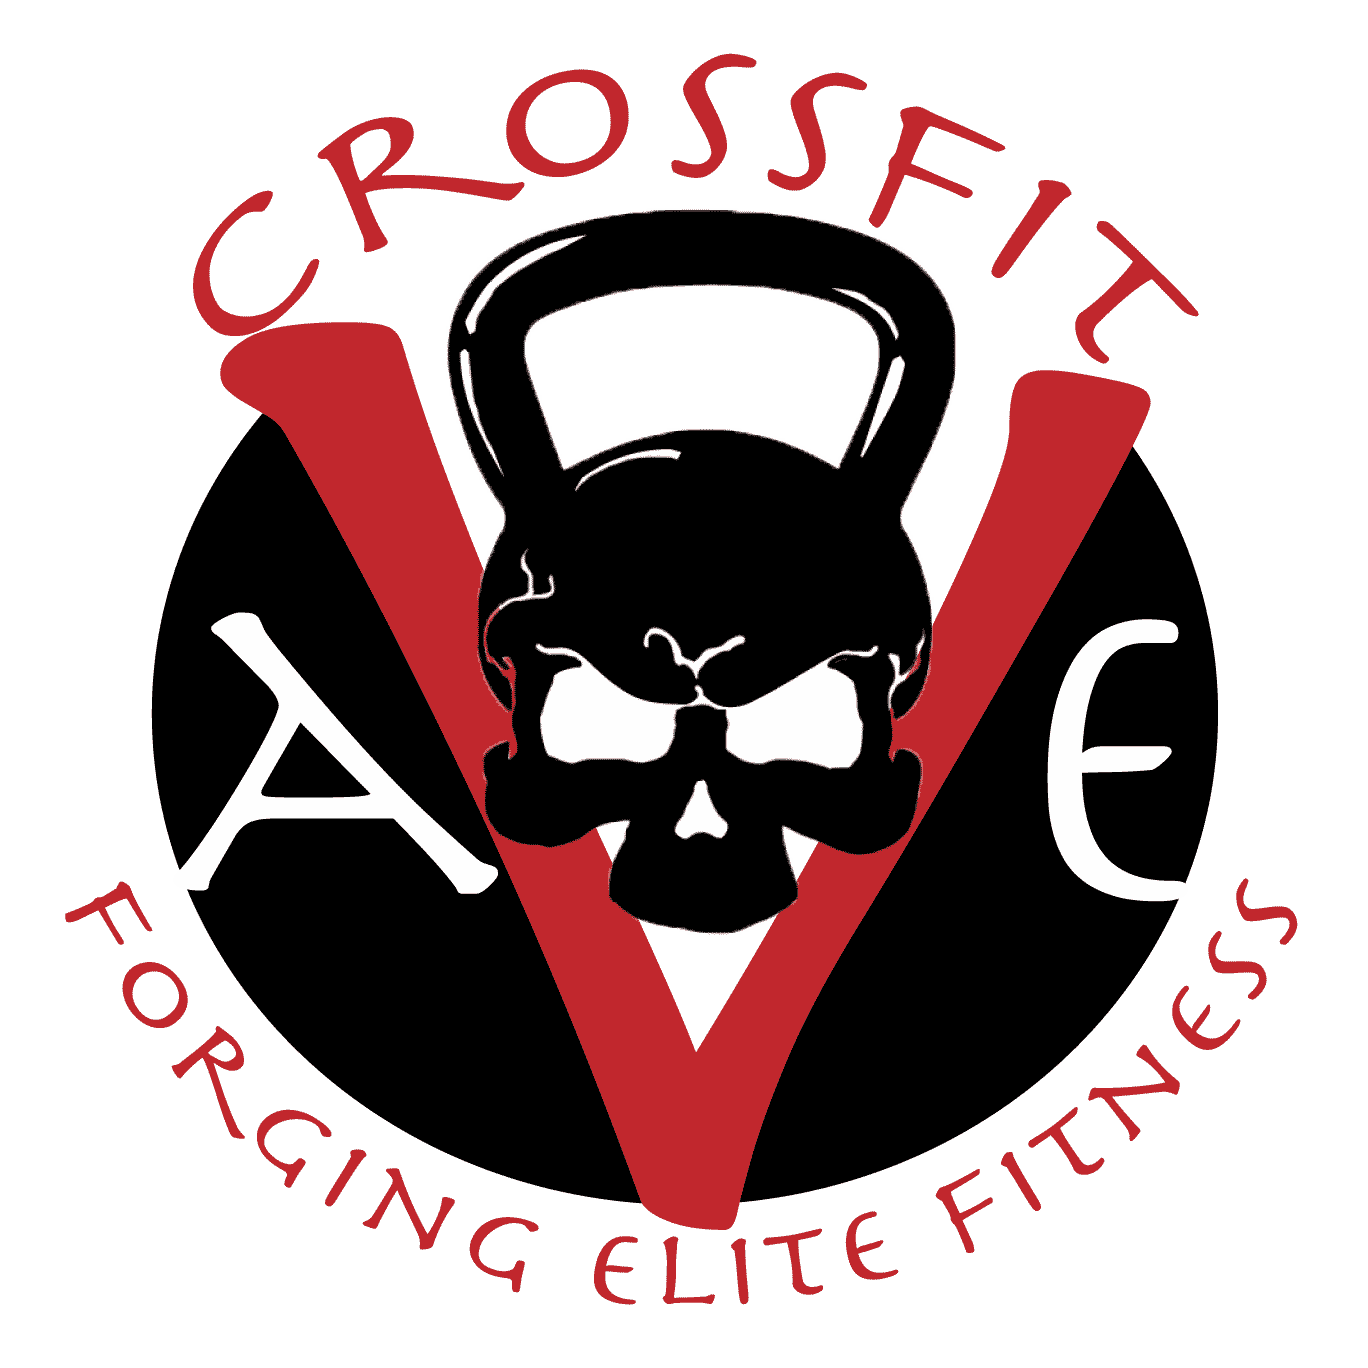 jpg library download Gym clipart equipment crossfit. Welcome to avenue mondaythursday